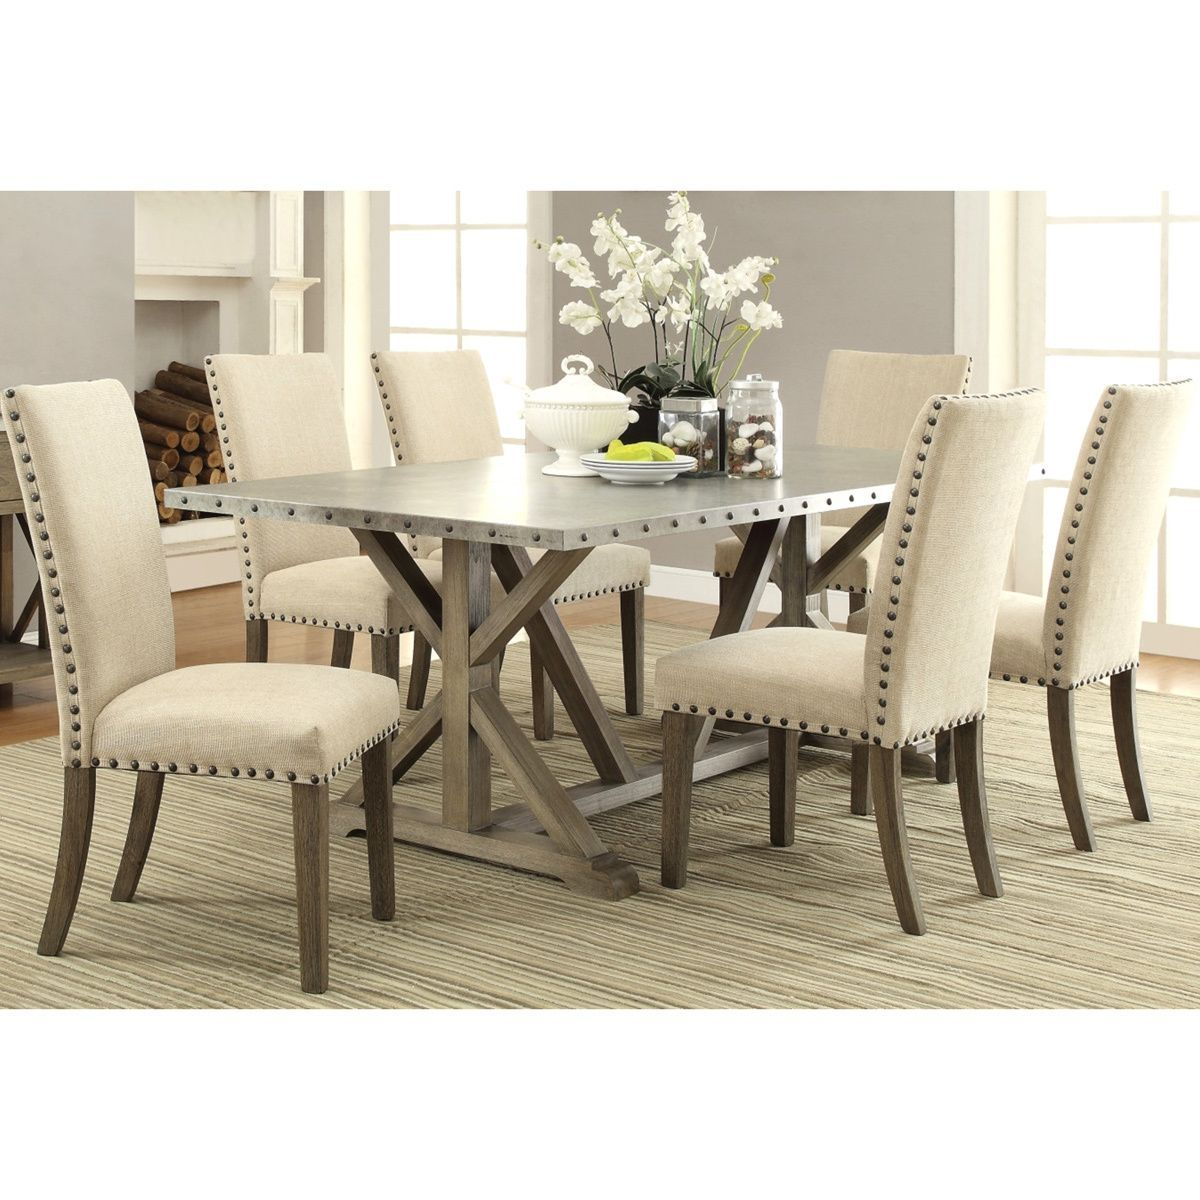 Rosemarin Transitional Driftwood And Metal Dining Set  Nailhead Interesting Large Dining Room Set Design Ideas